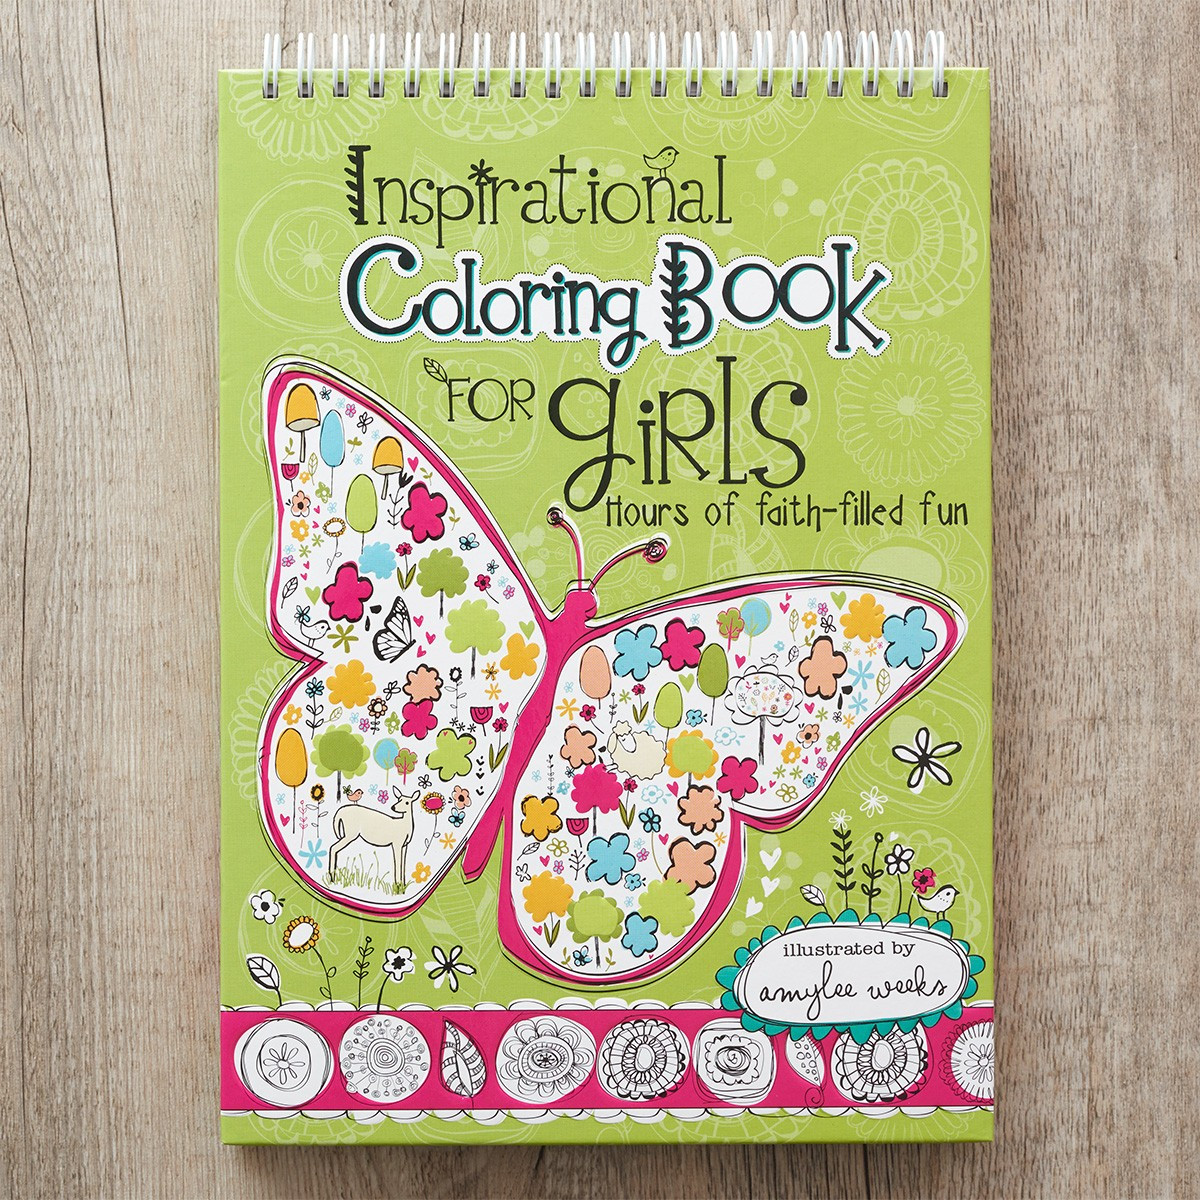 inspirational coloring book for girls - Coloring Book For Girls